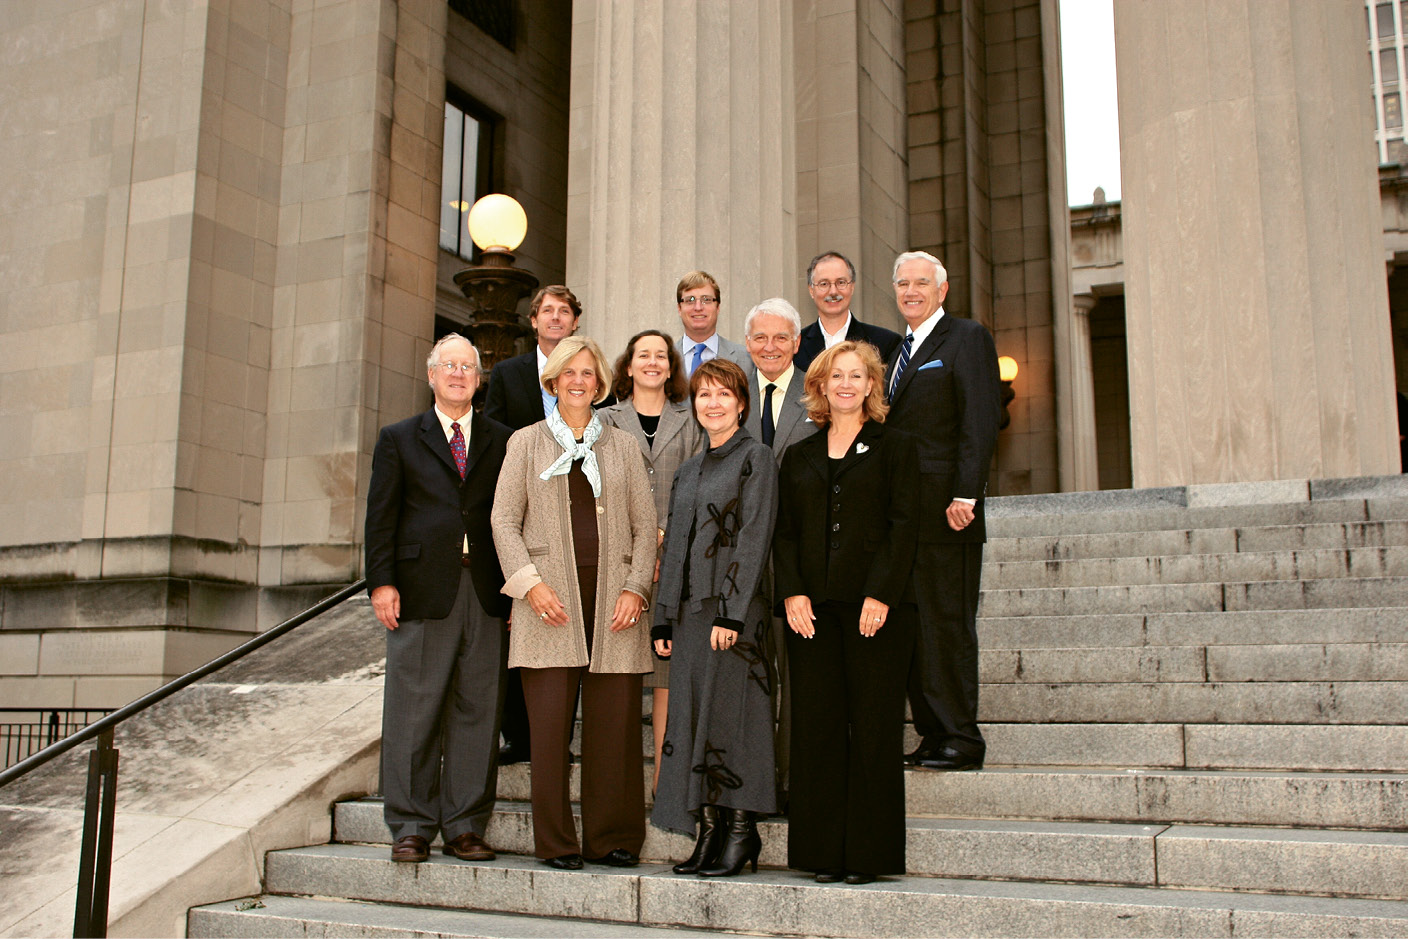 Receiving a National Trust for Historic Preservation award in 2009